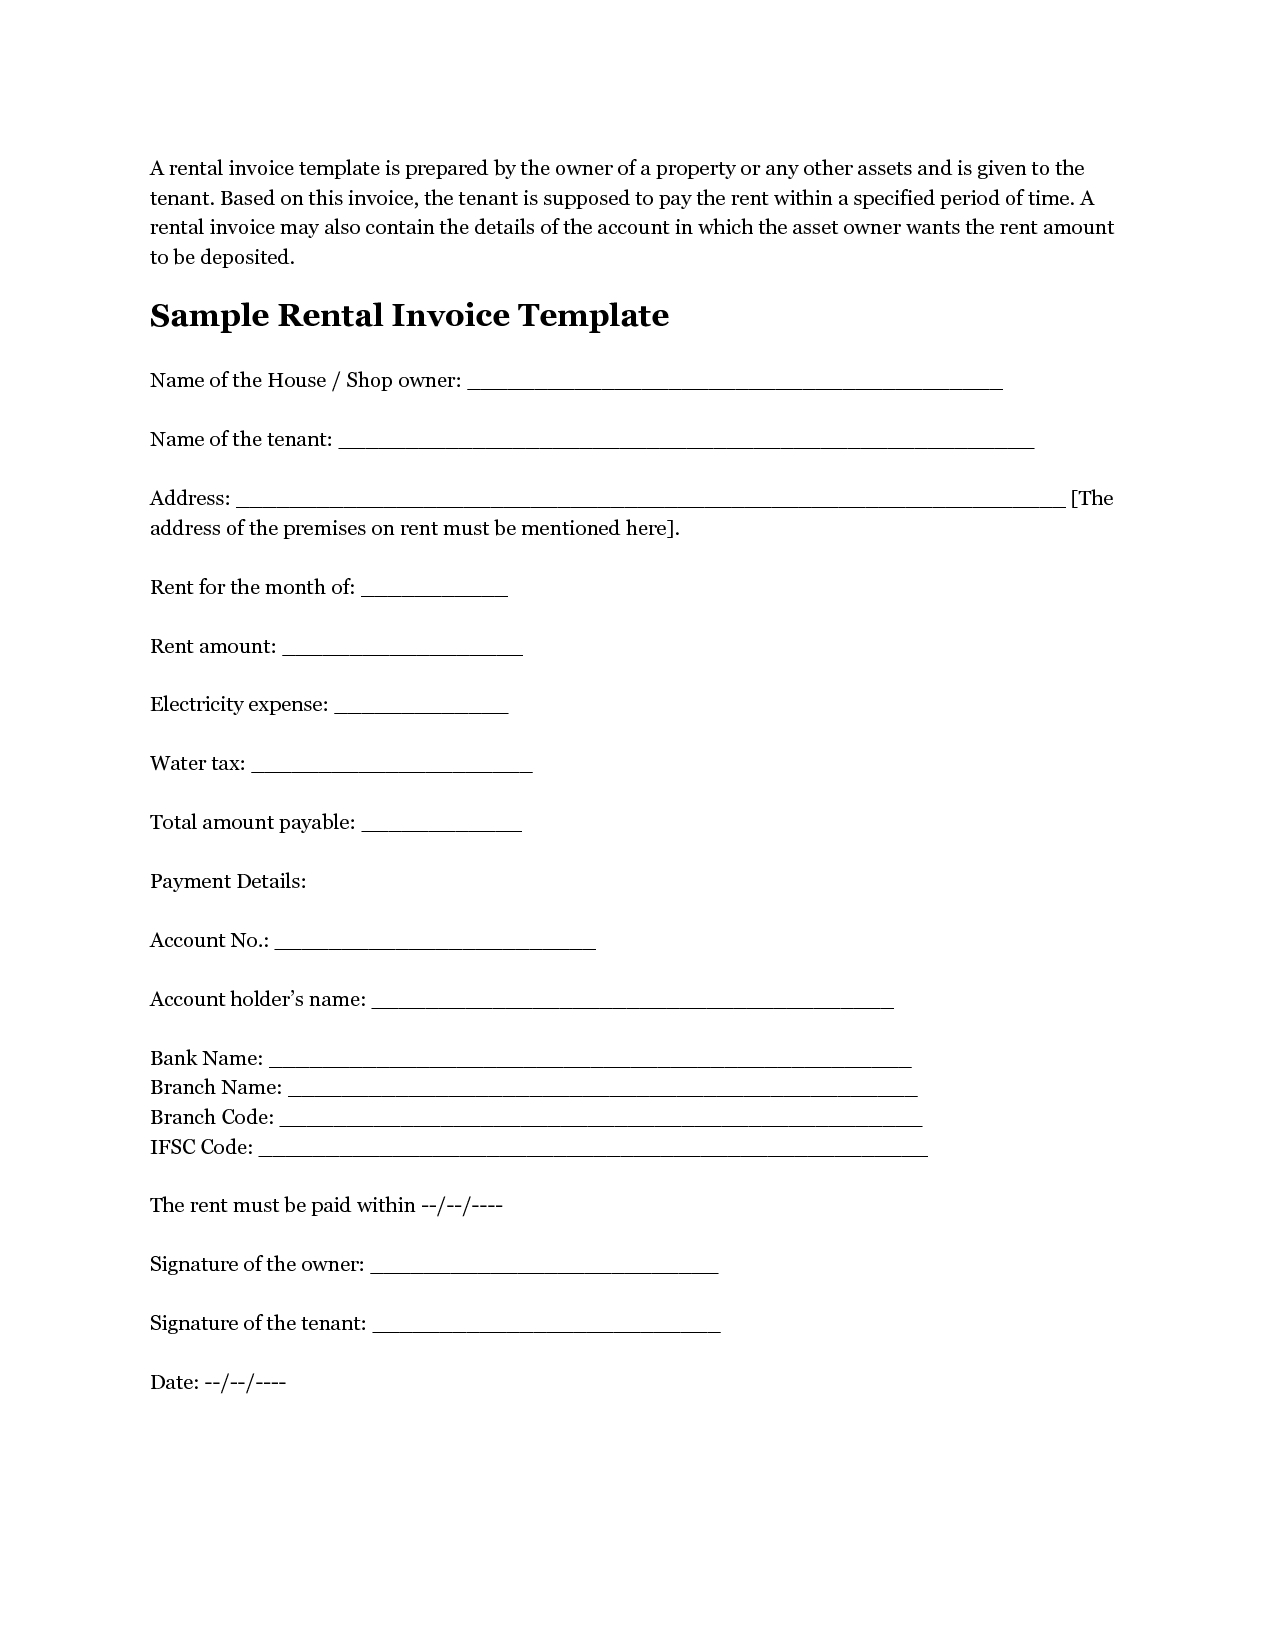 rental invoice sample rent invoice form invoice template free 2016 1275 X 1650